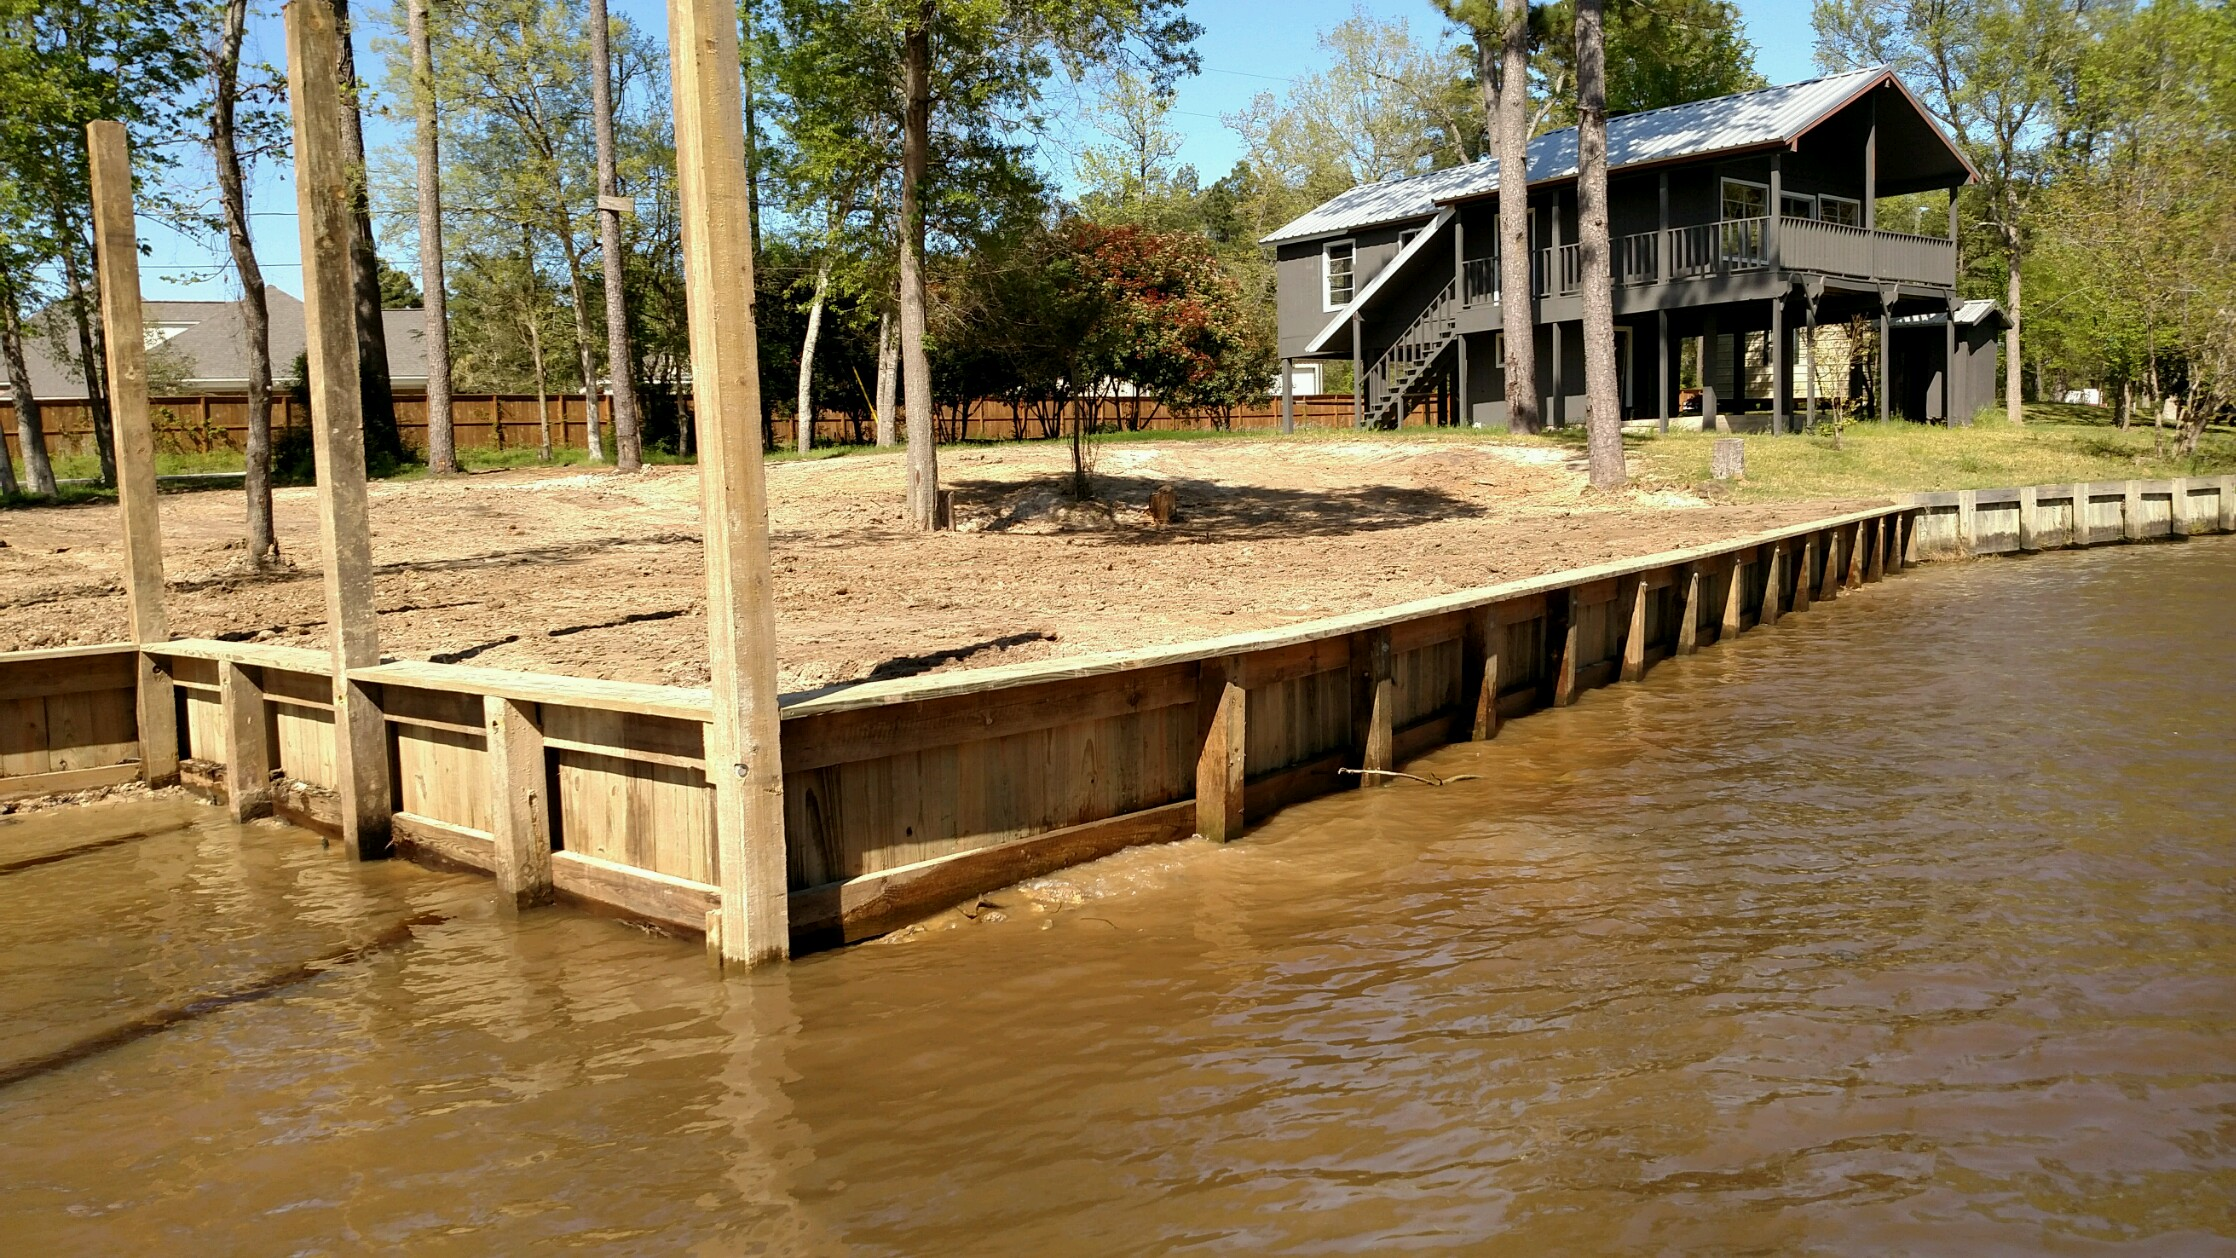 After bulkhead construction and boat slip near huffman on lake houston